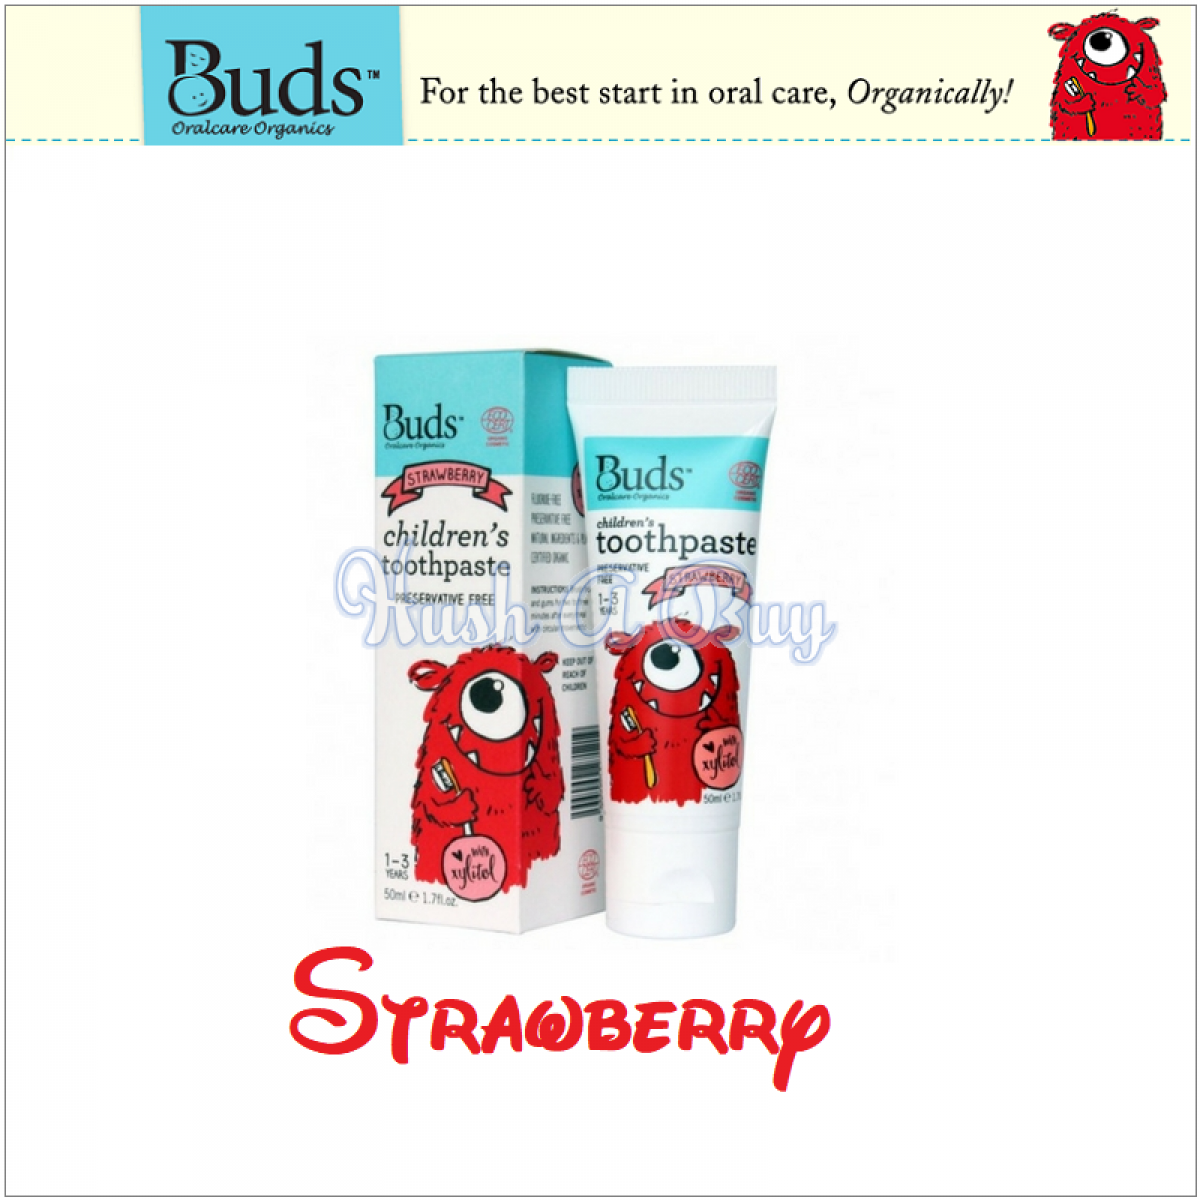 Buds Children's Toothpaste With Xylitol 1-3 Years